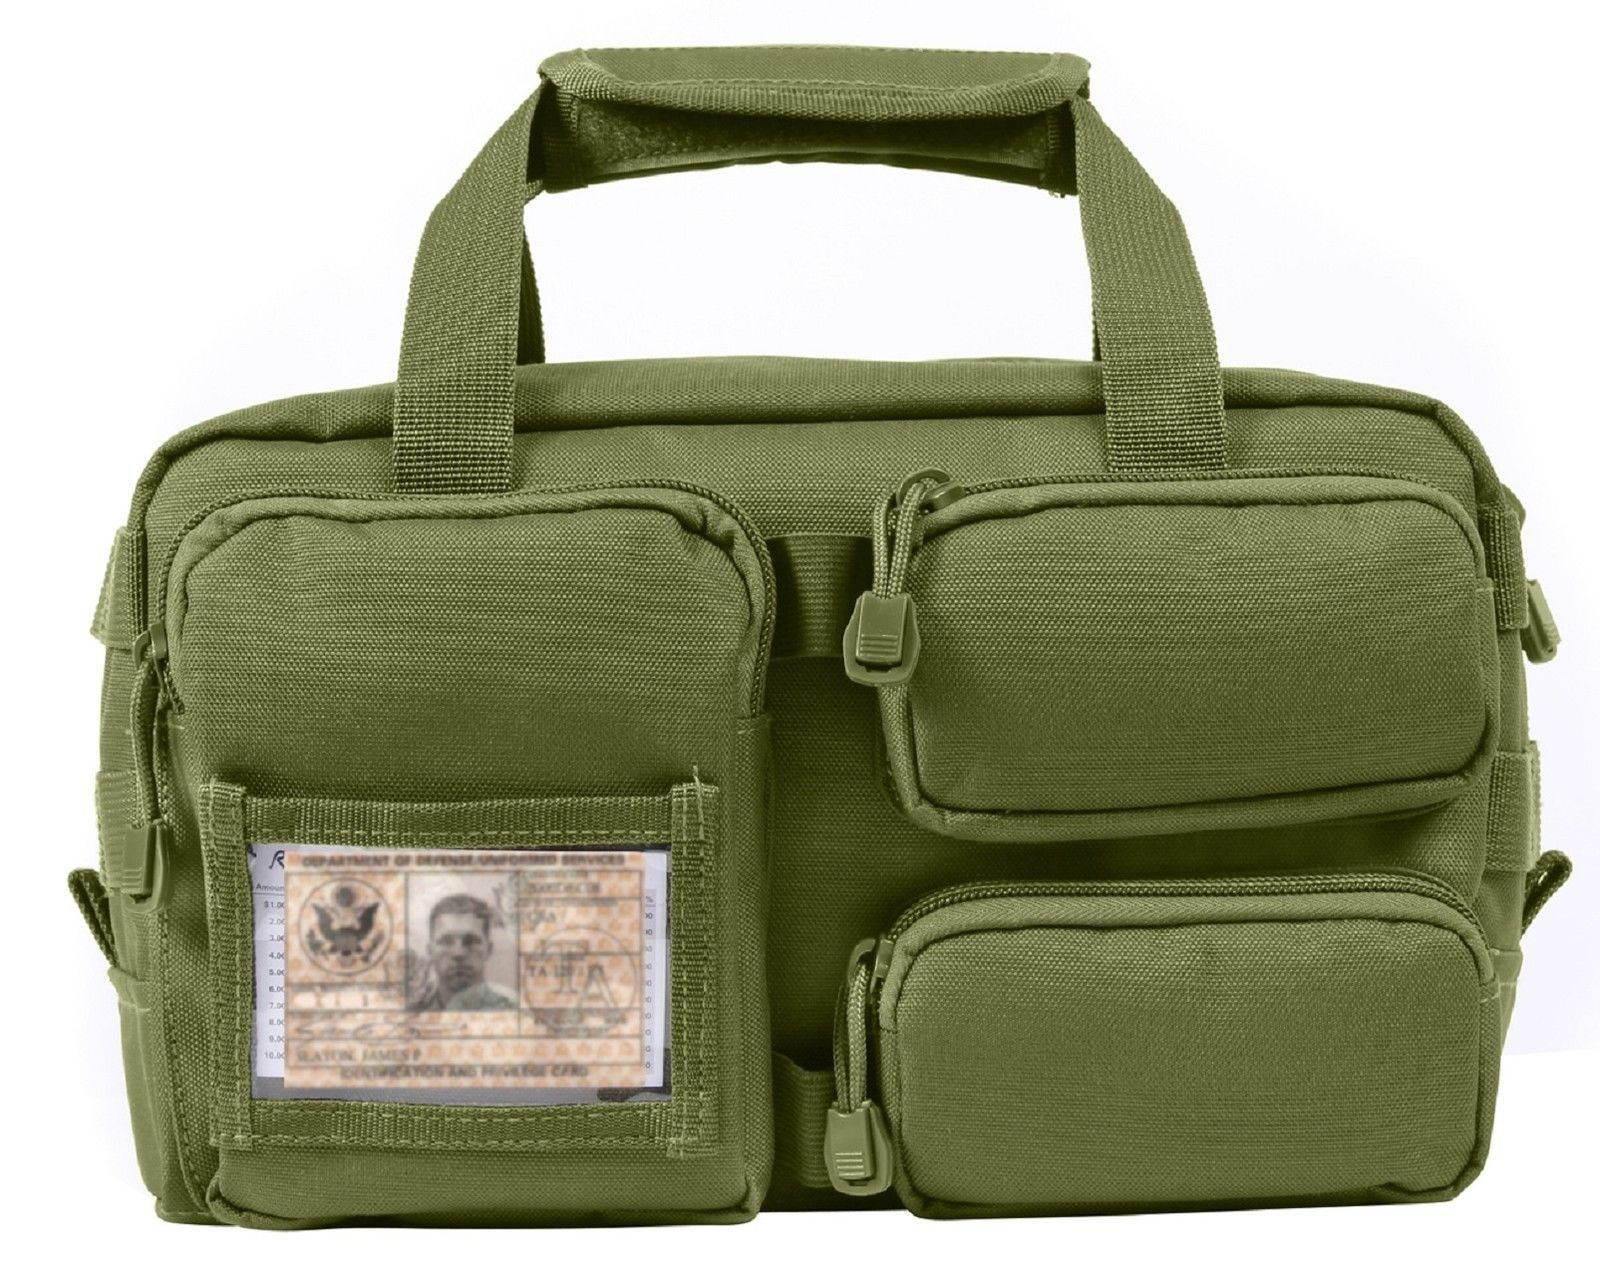 Tactical Molle Tool Bag Rothco Utility Id Holder Bags W Removable Compartment